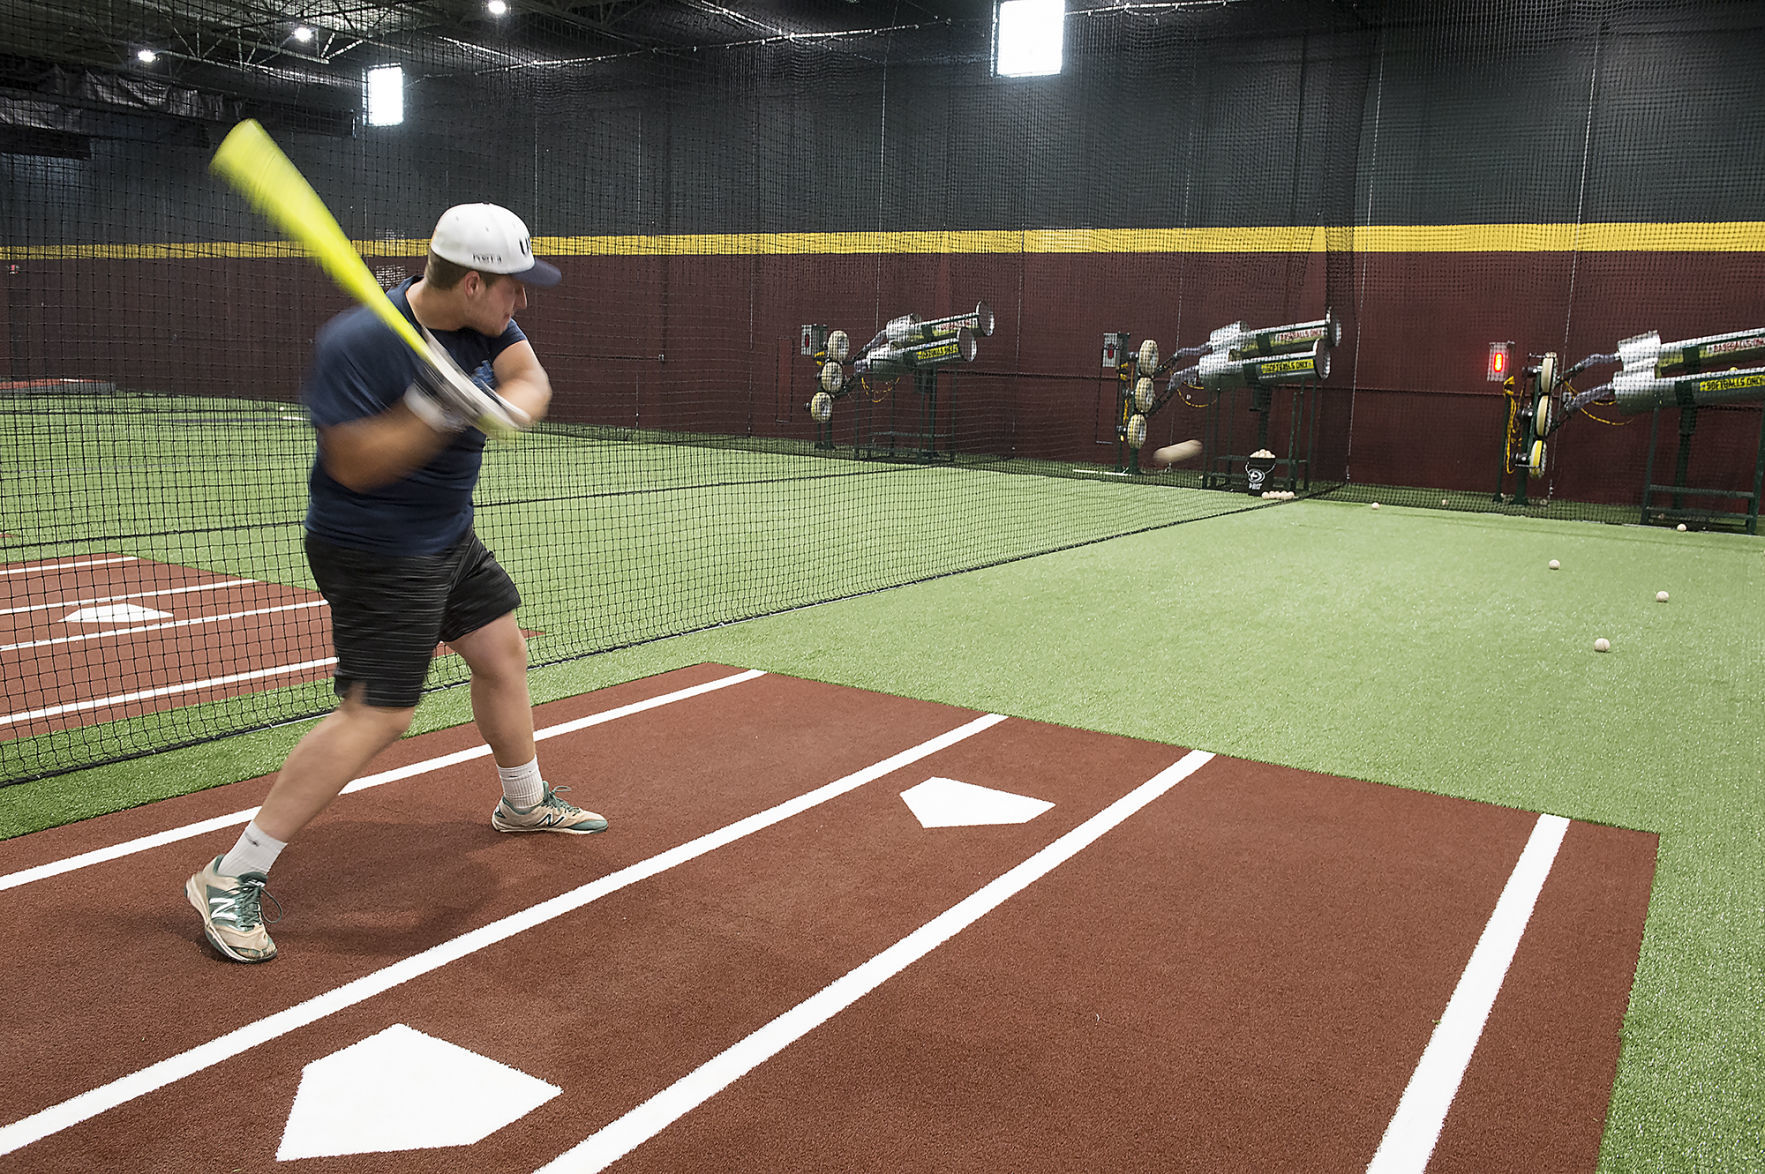 New Lincoln baseball, softball training facility to celebrate grand opening | Journal Star